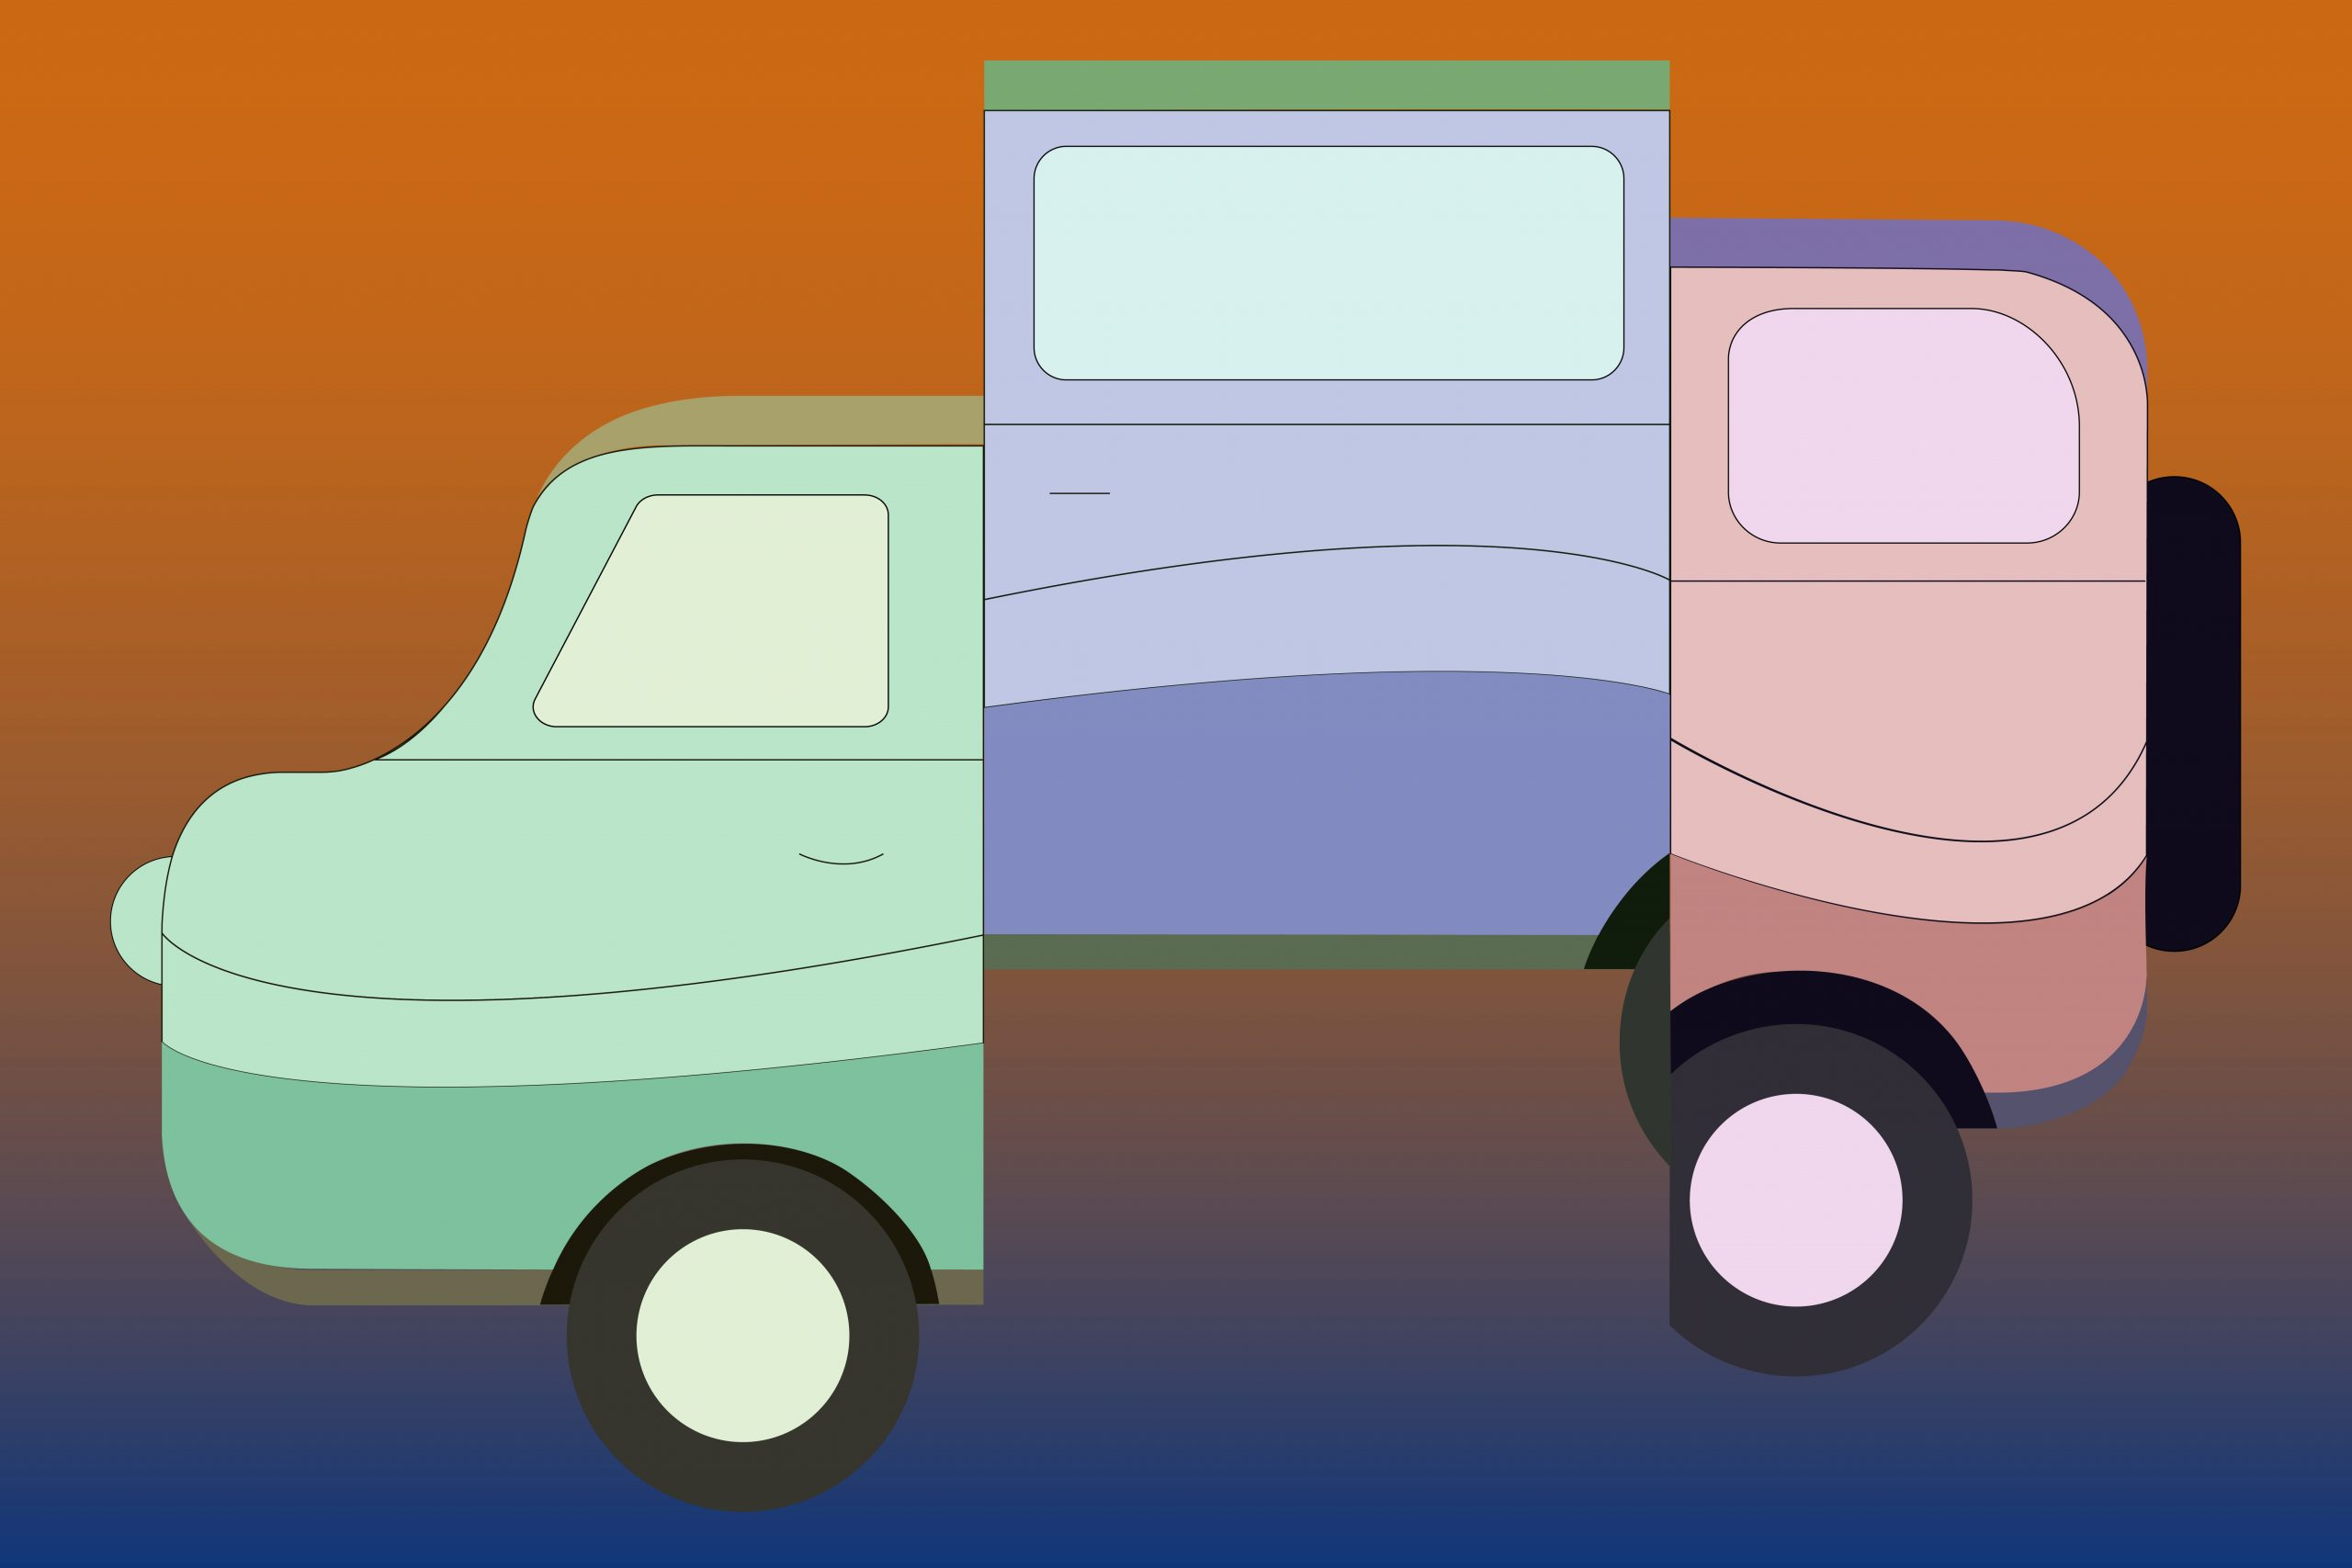 An illustration of a van for an article about the film Nomadland and nomadic living. (Illustration by Julie Chow, University of California, Berkeley)